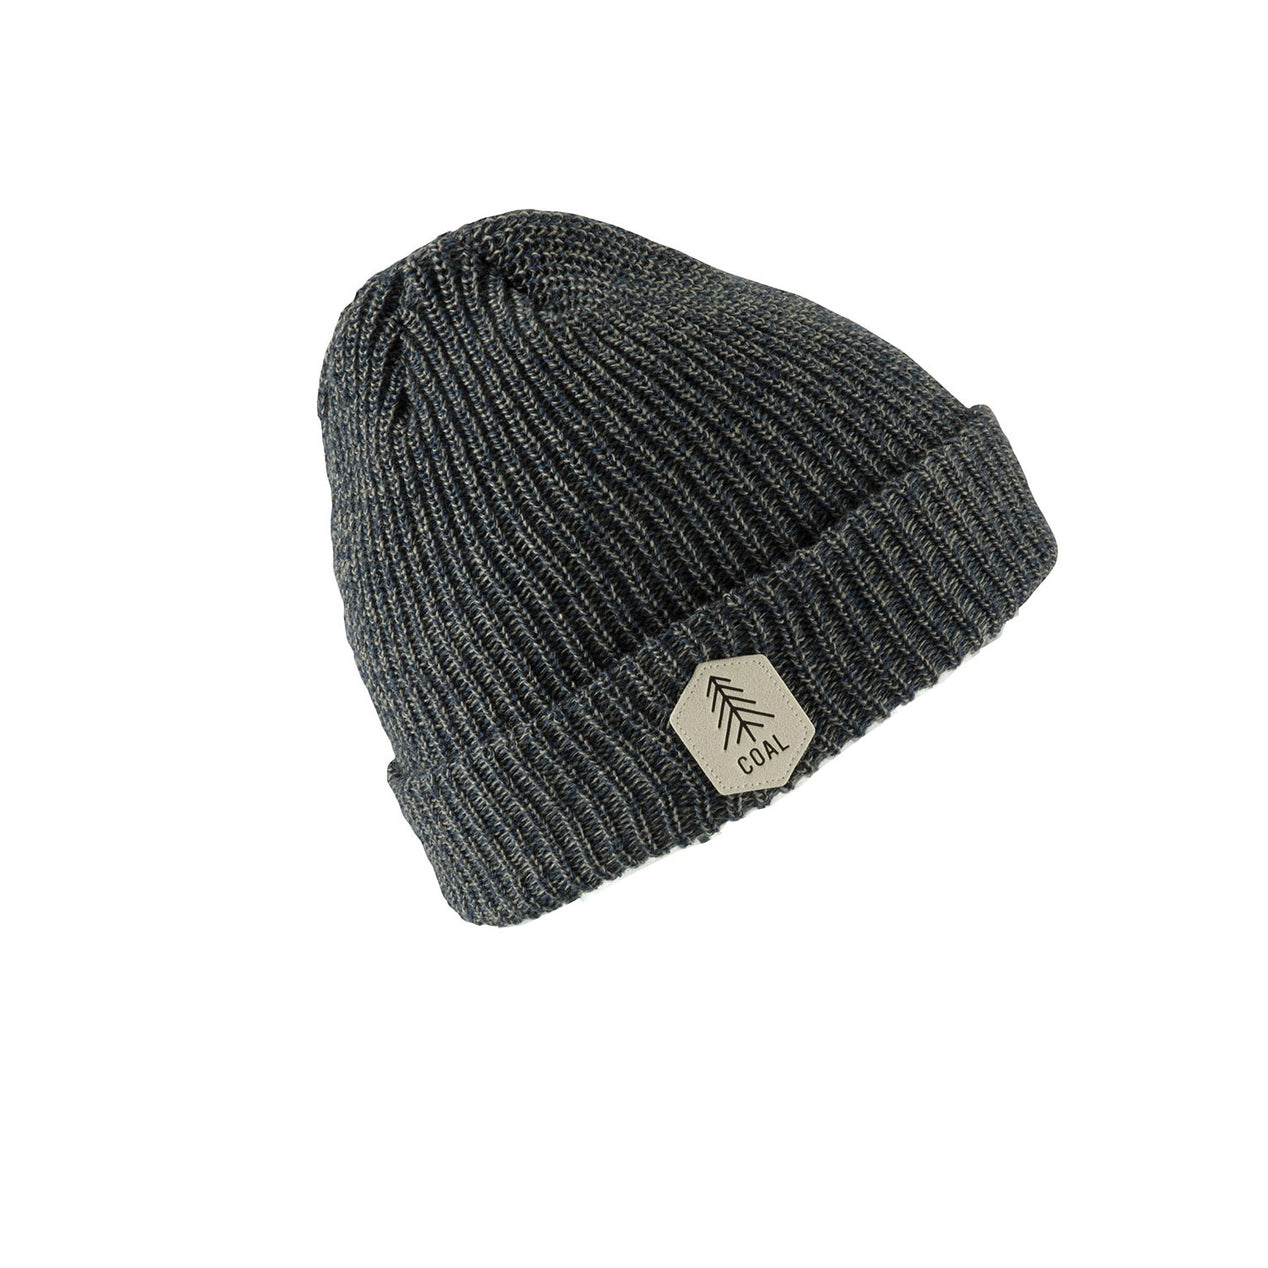 8f00fc292c7 Coal Unisex The Scout Beanie